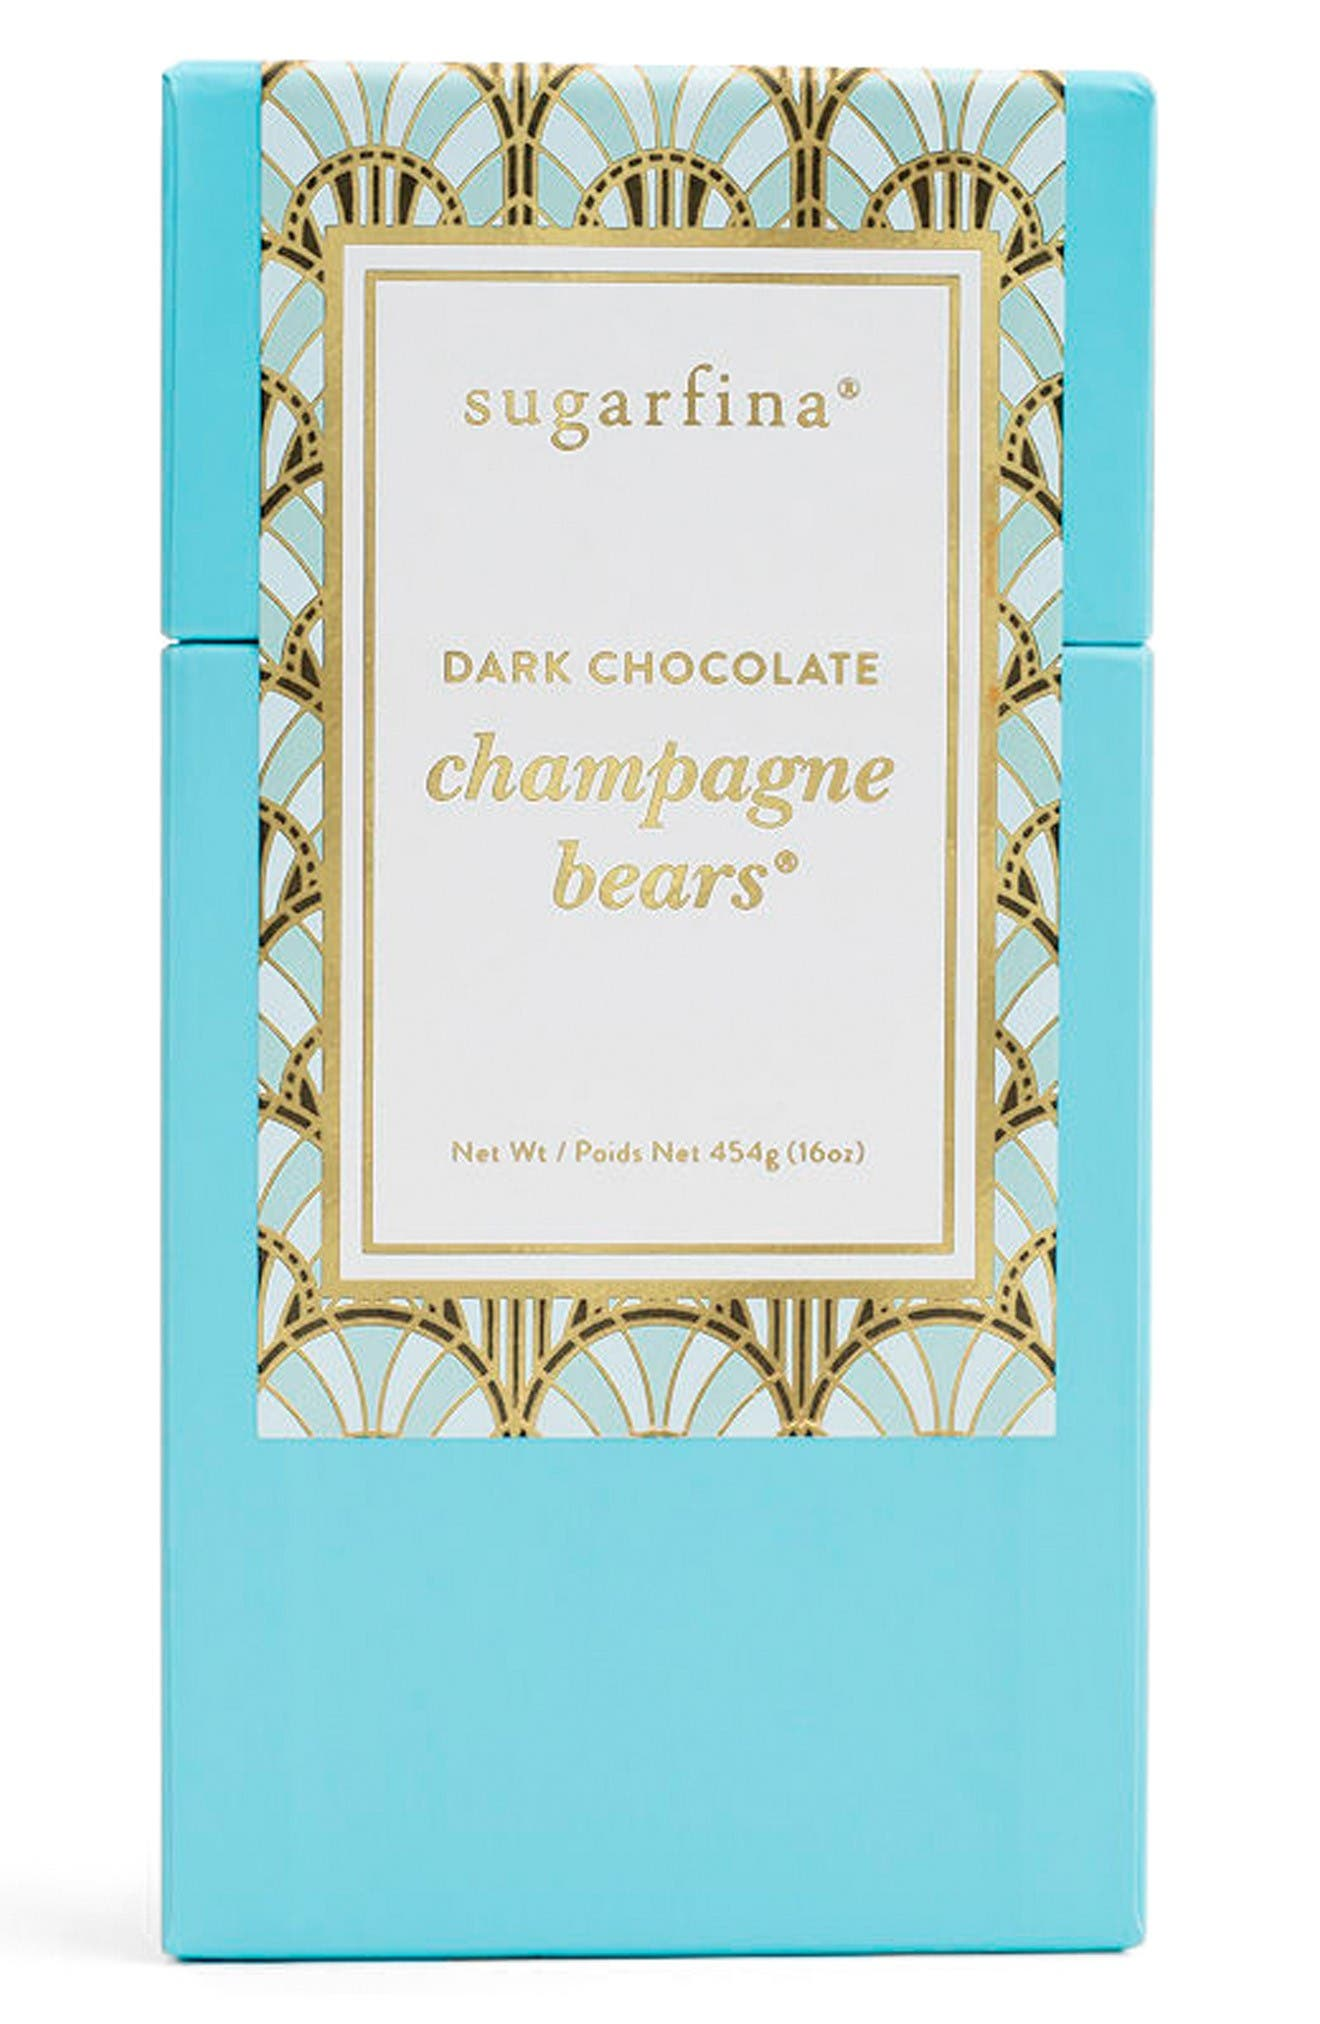 sugarfina Dark Chocolate Champagne Bears®